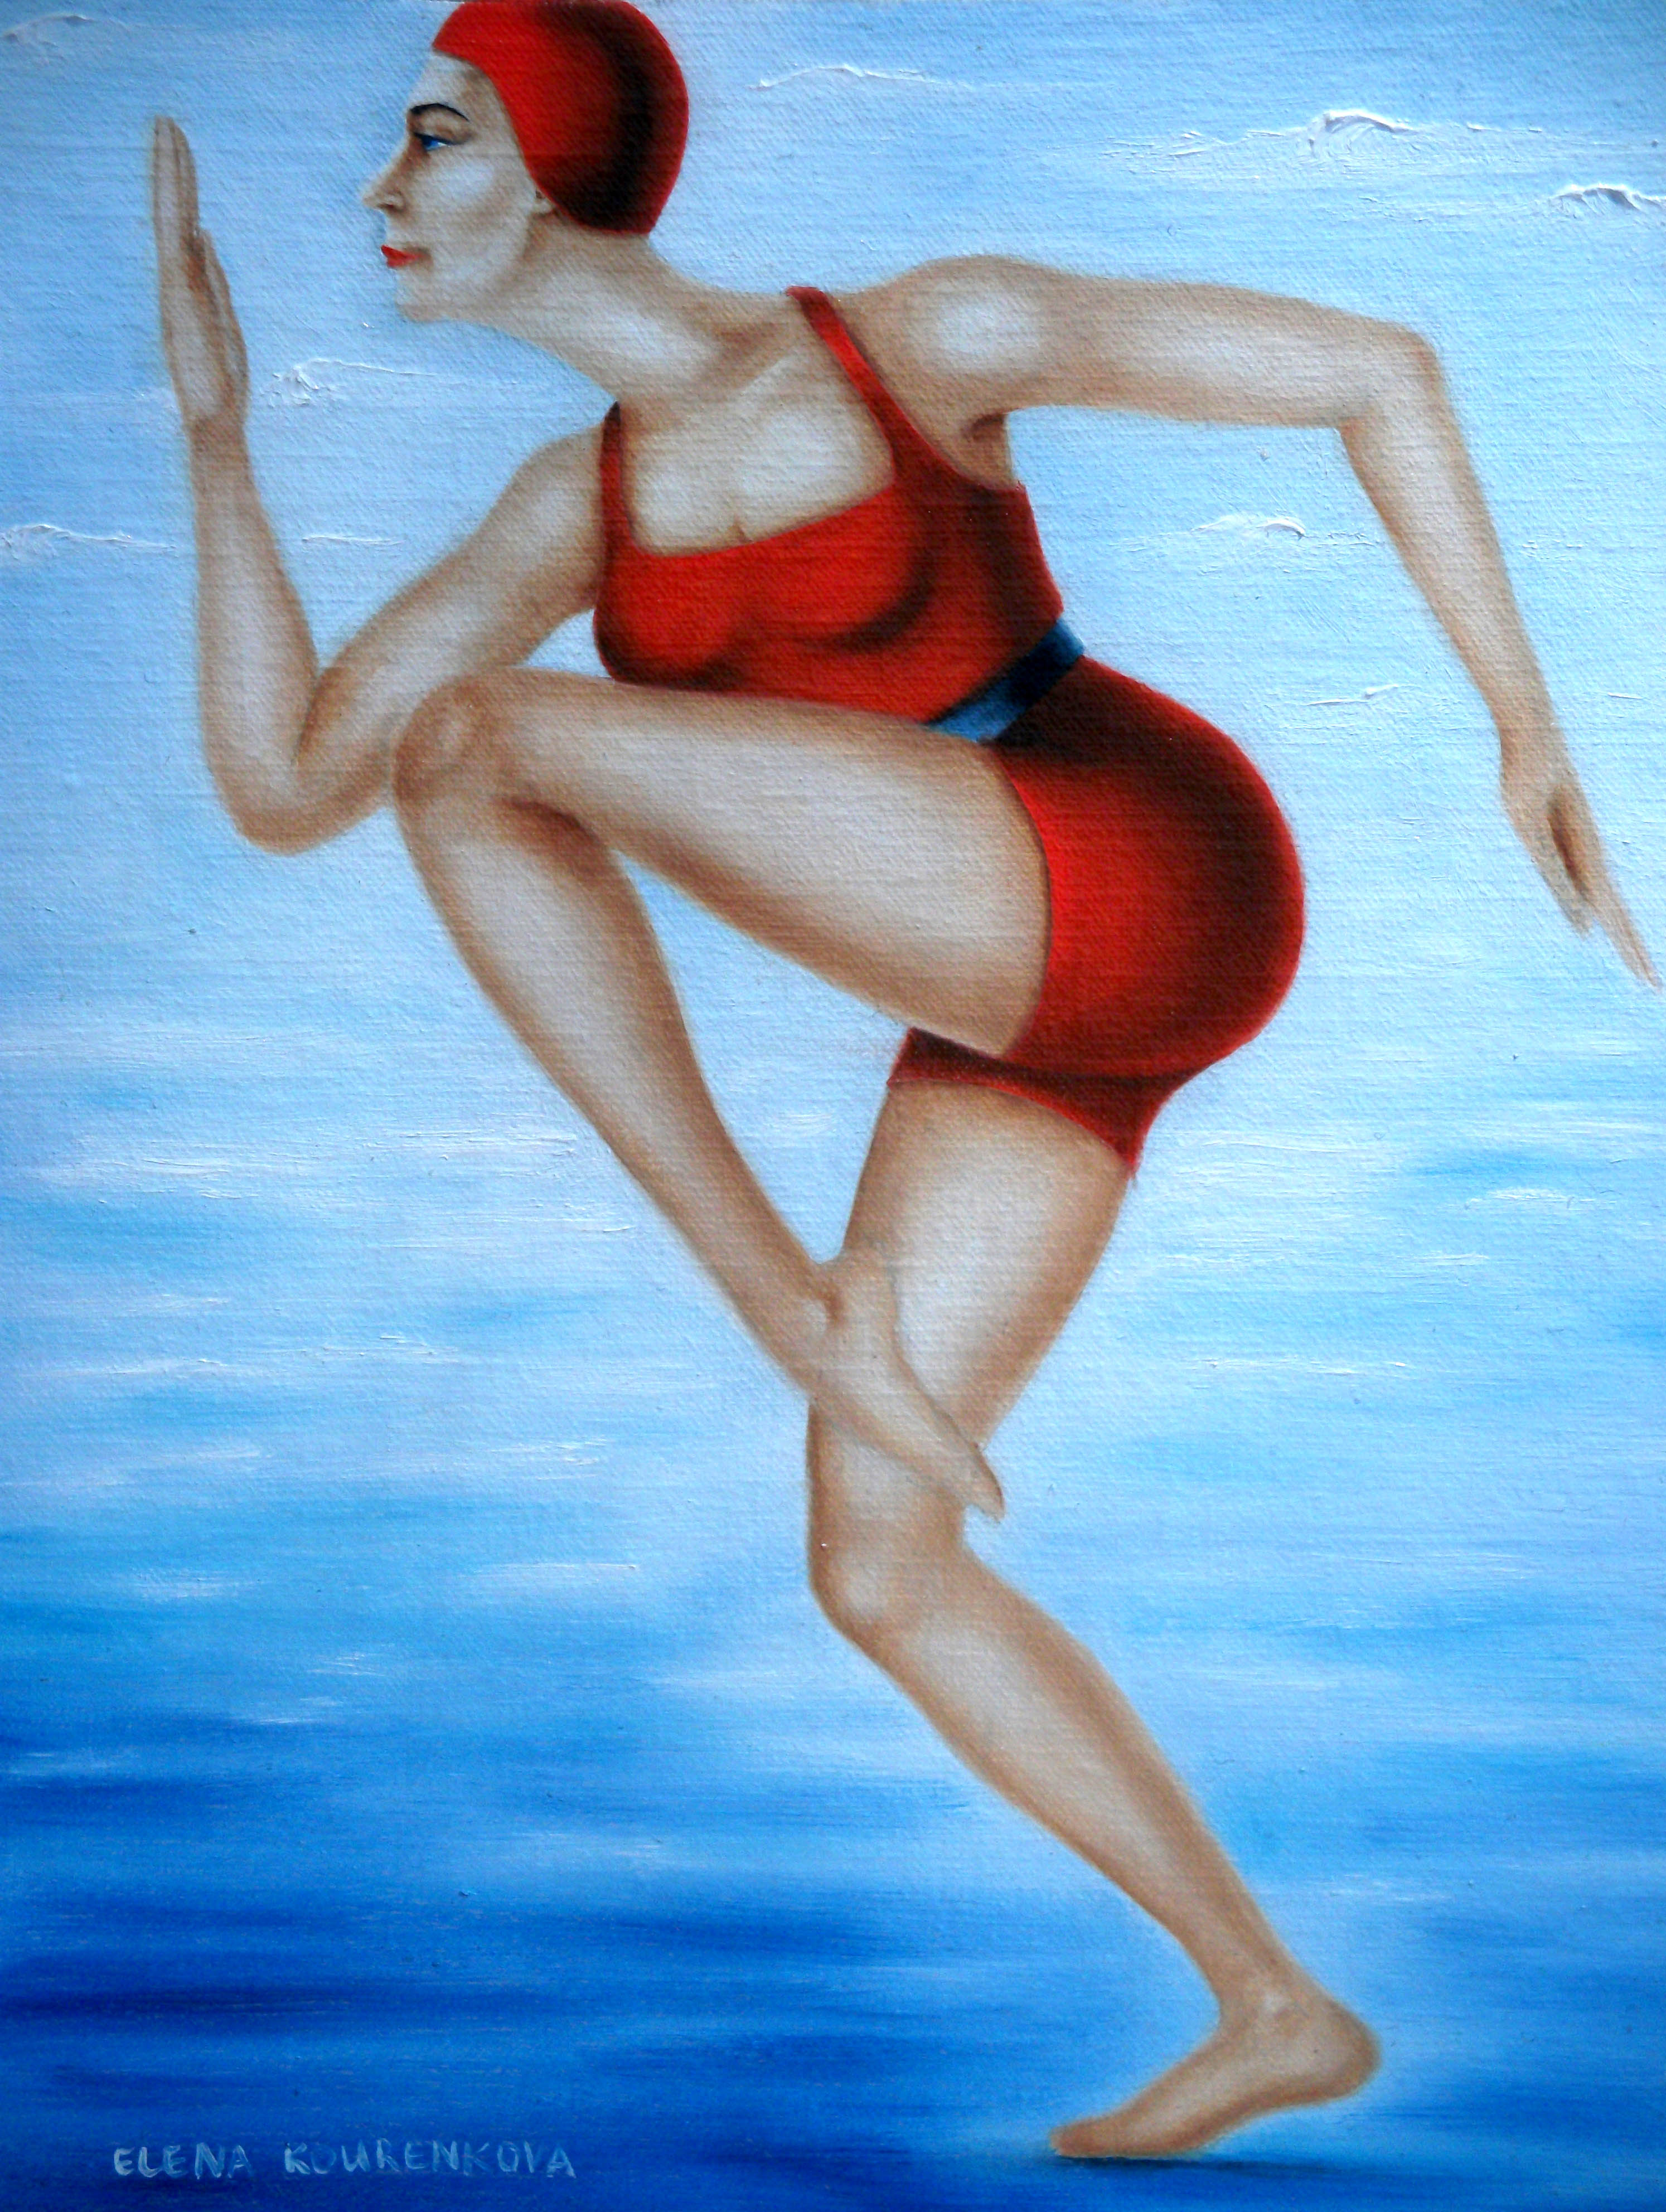 art deco style painting-swimmer